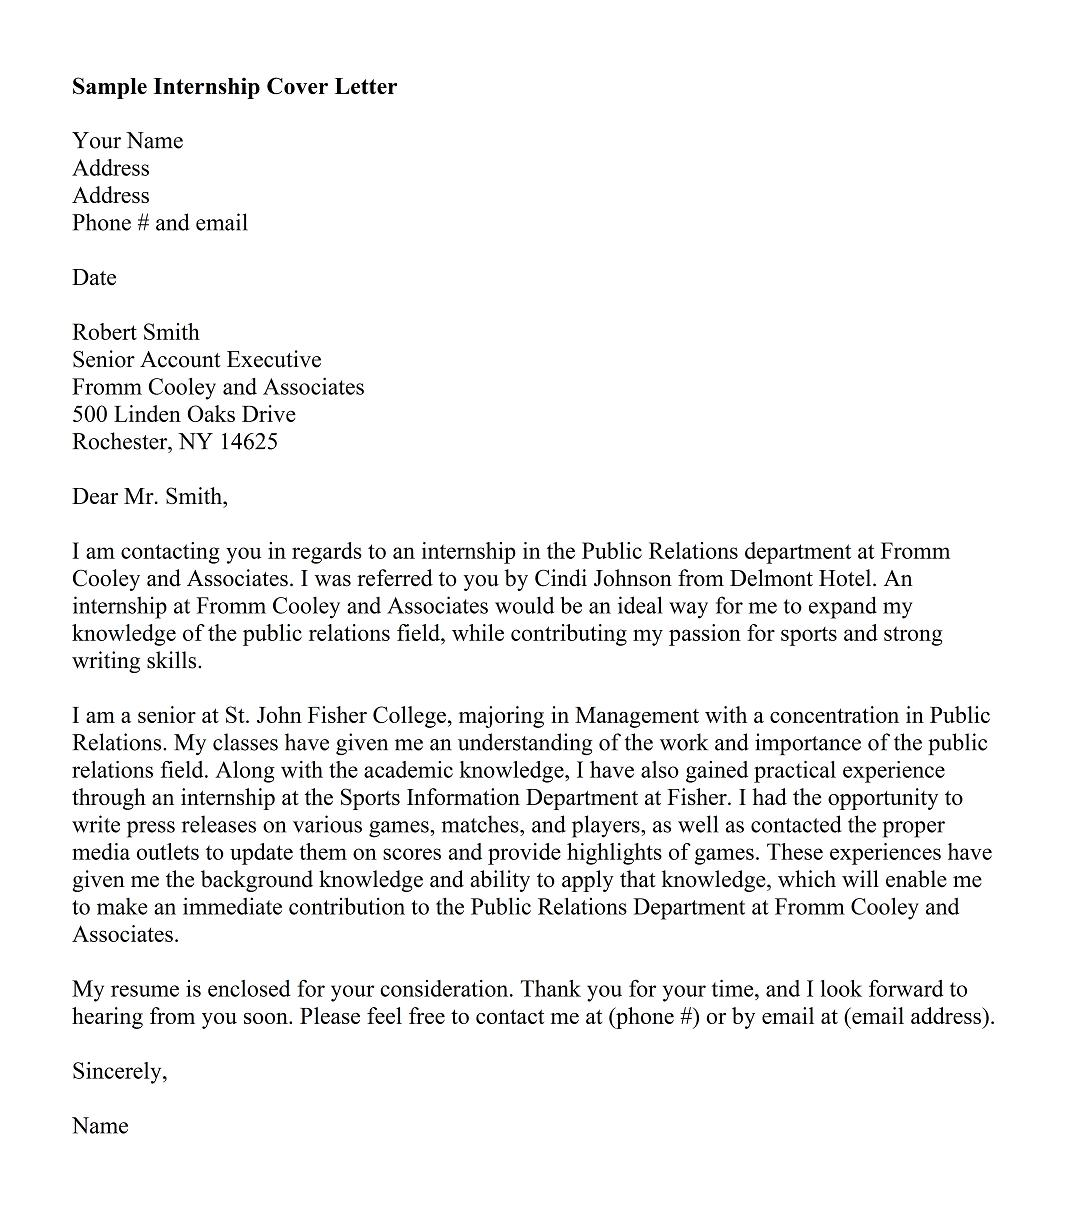 cover letter example - How To Write A Great Cover Letter Examples